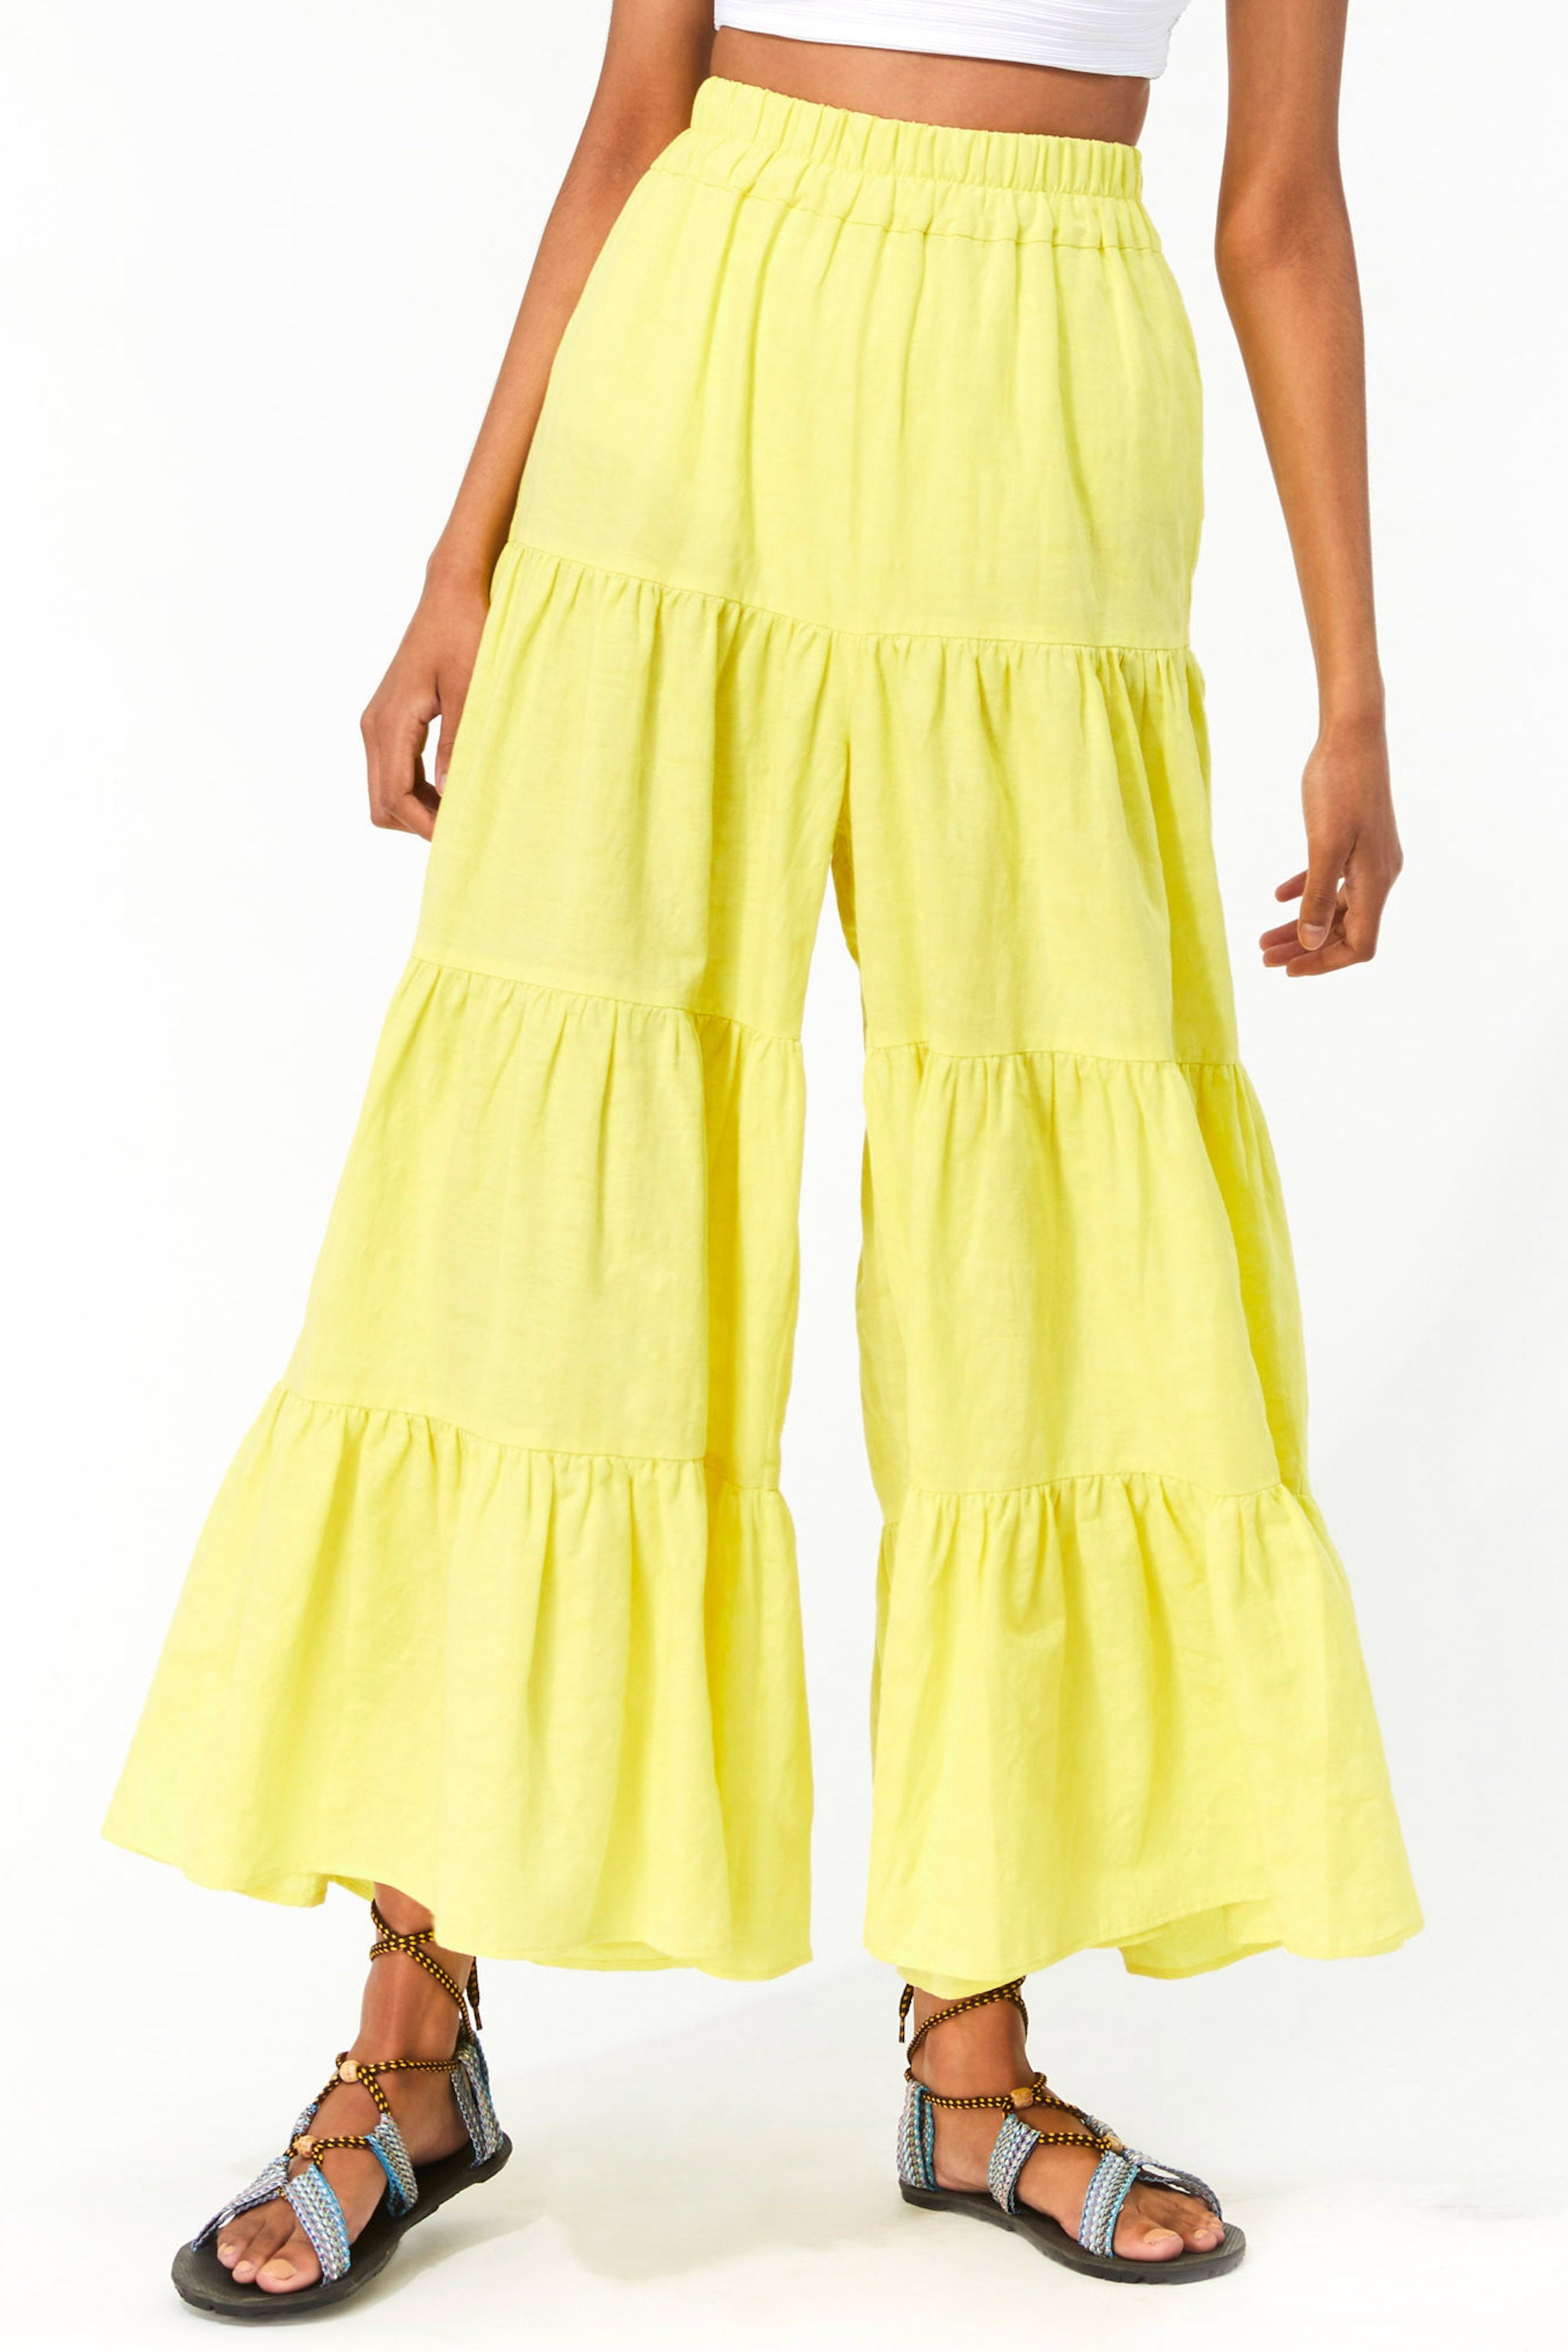 Mara Hoffman Neon Green Shelesea Pant in organic cotton and linen (front detail)